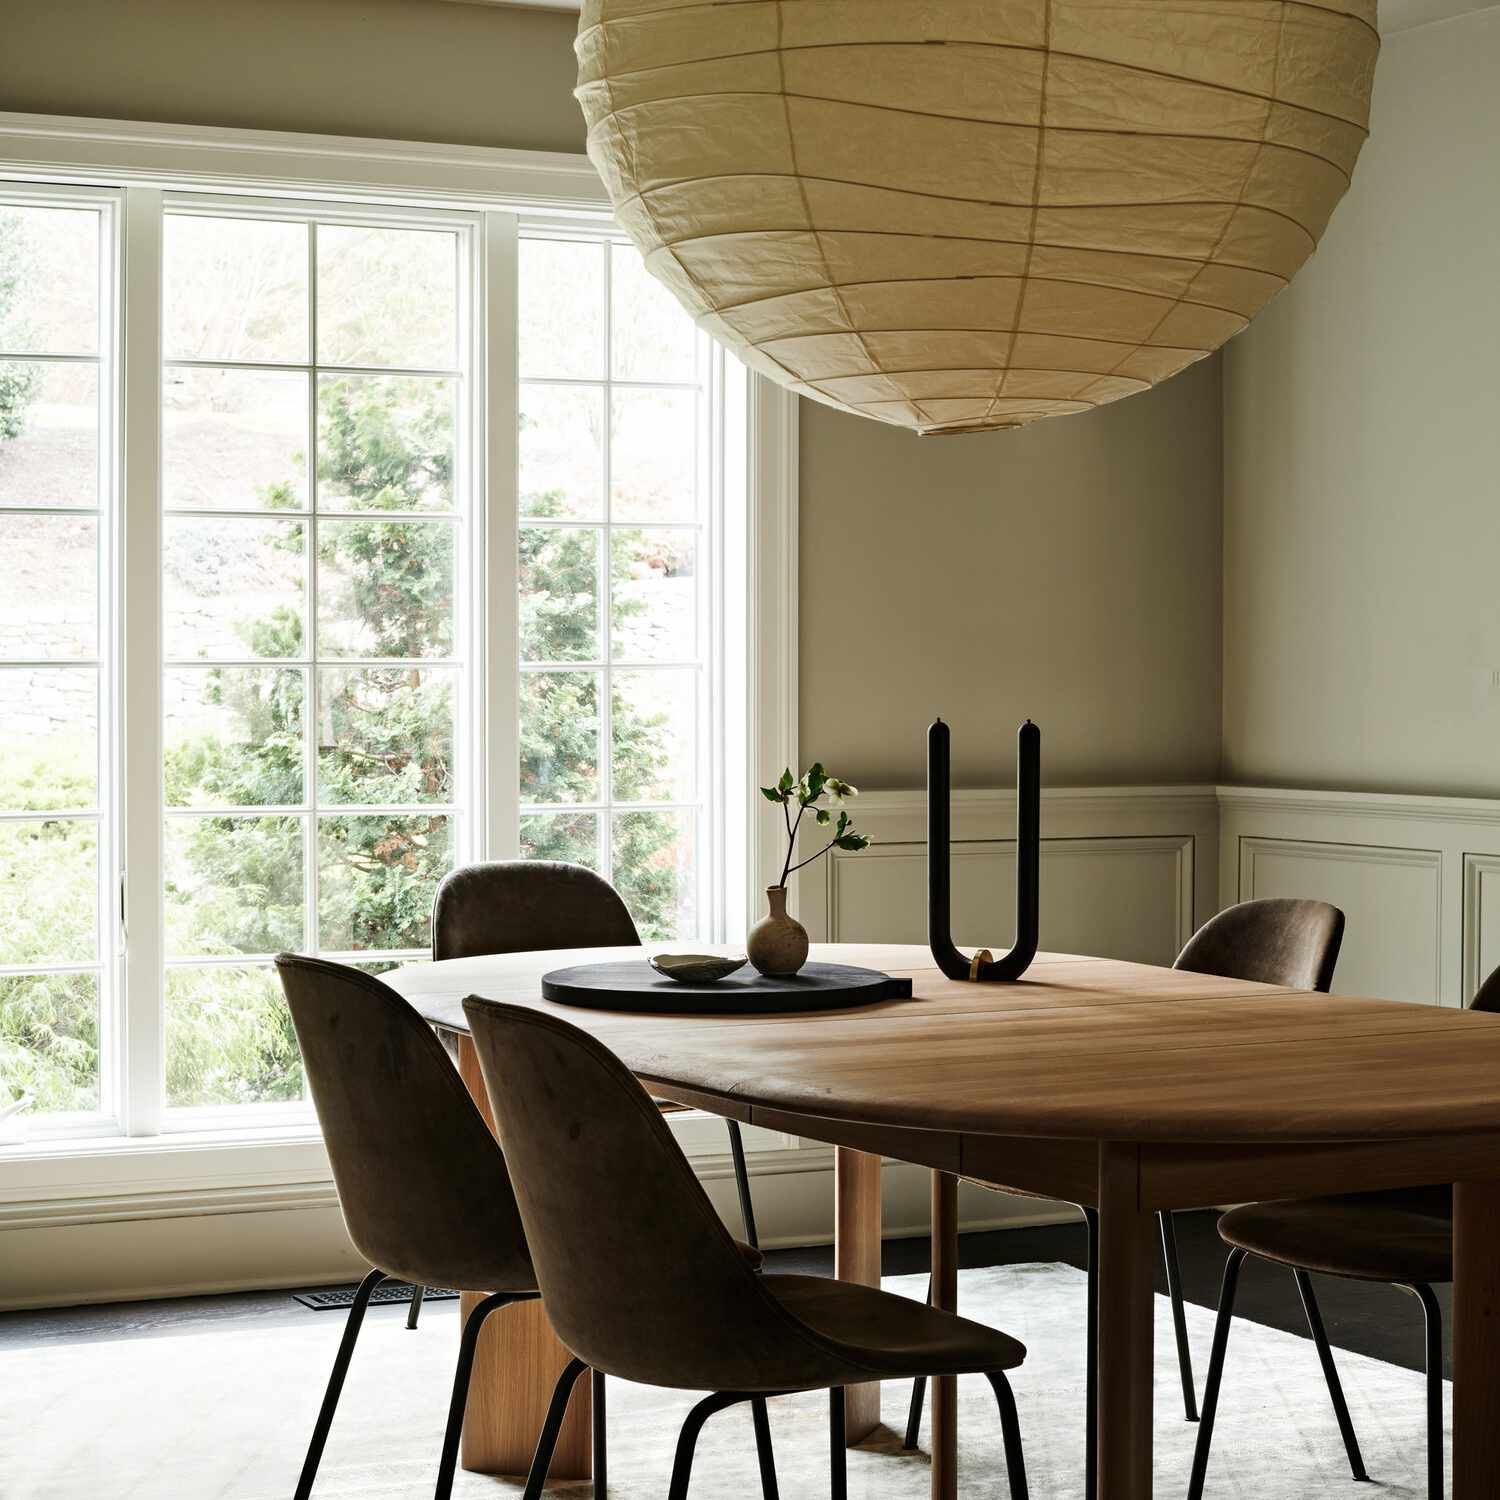 A dining room with a large circular pendant light